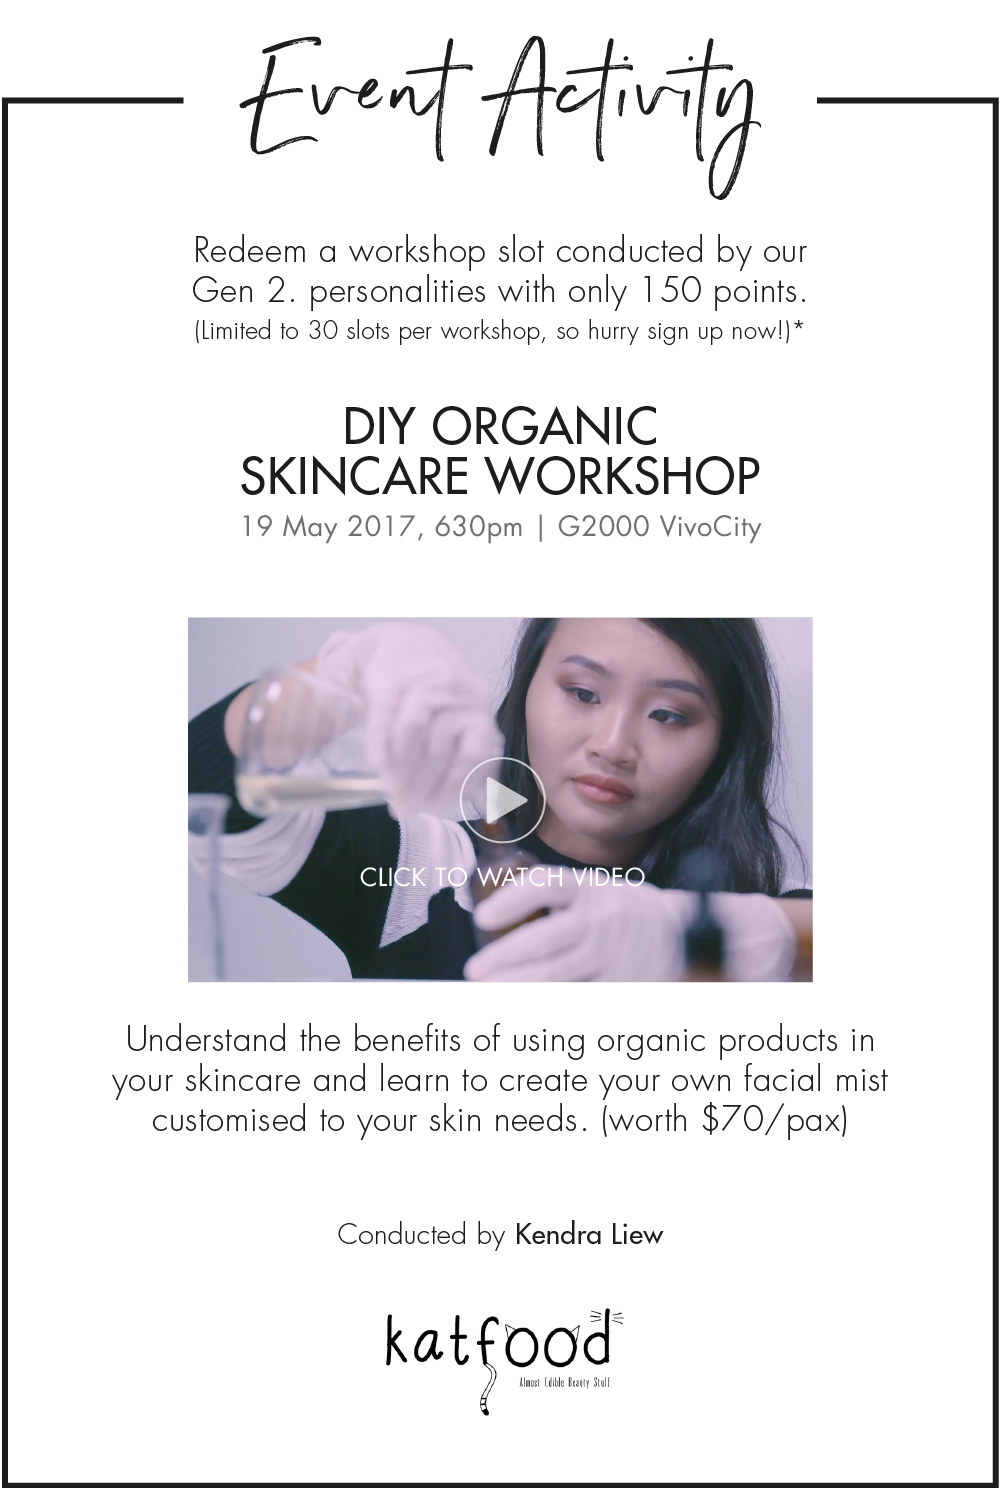 DIY-ORGANIC-SKINCARE-WORKSHOP-02.jpg